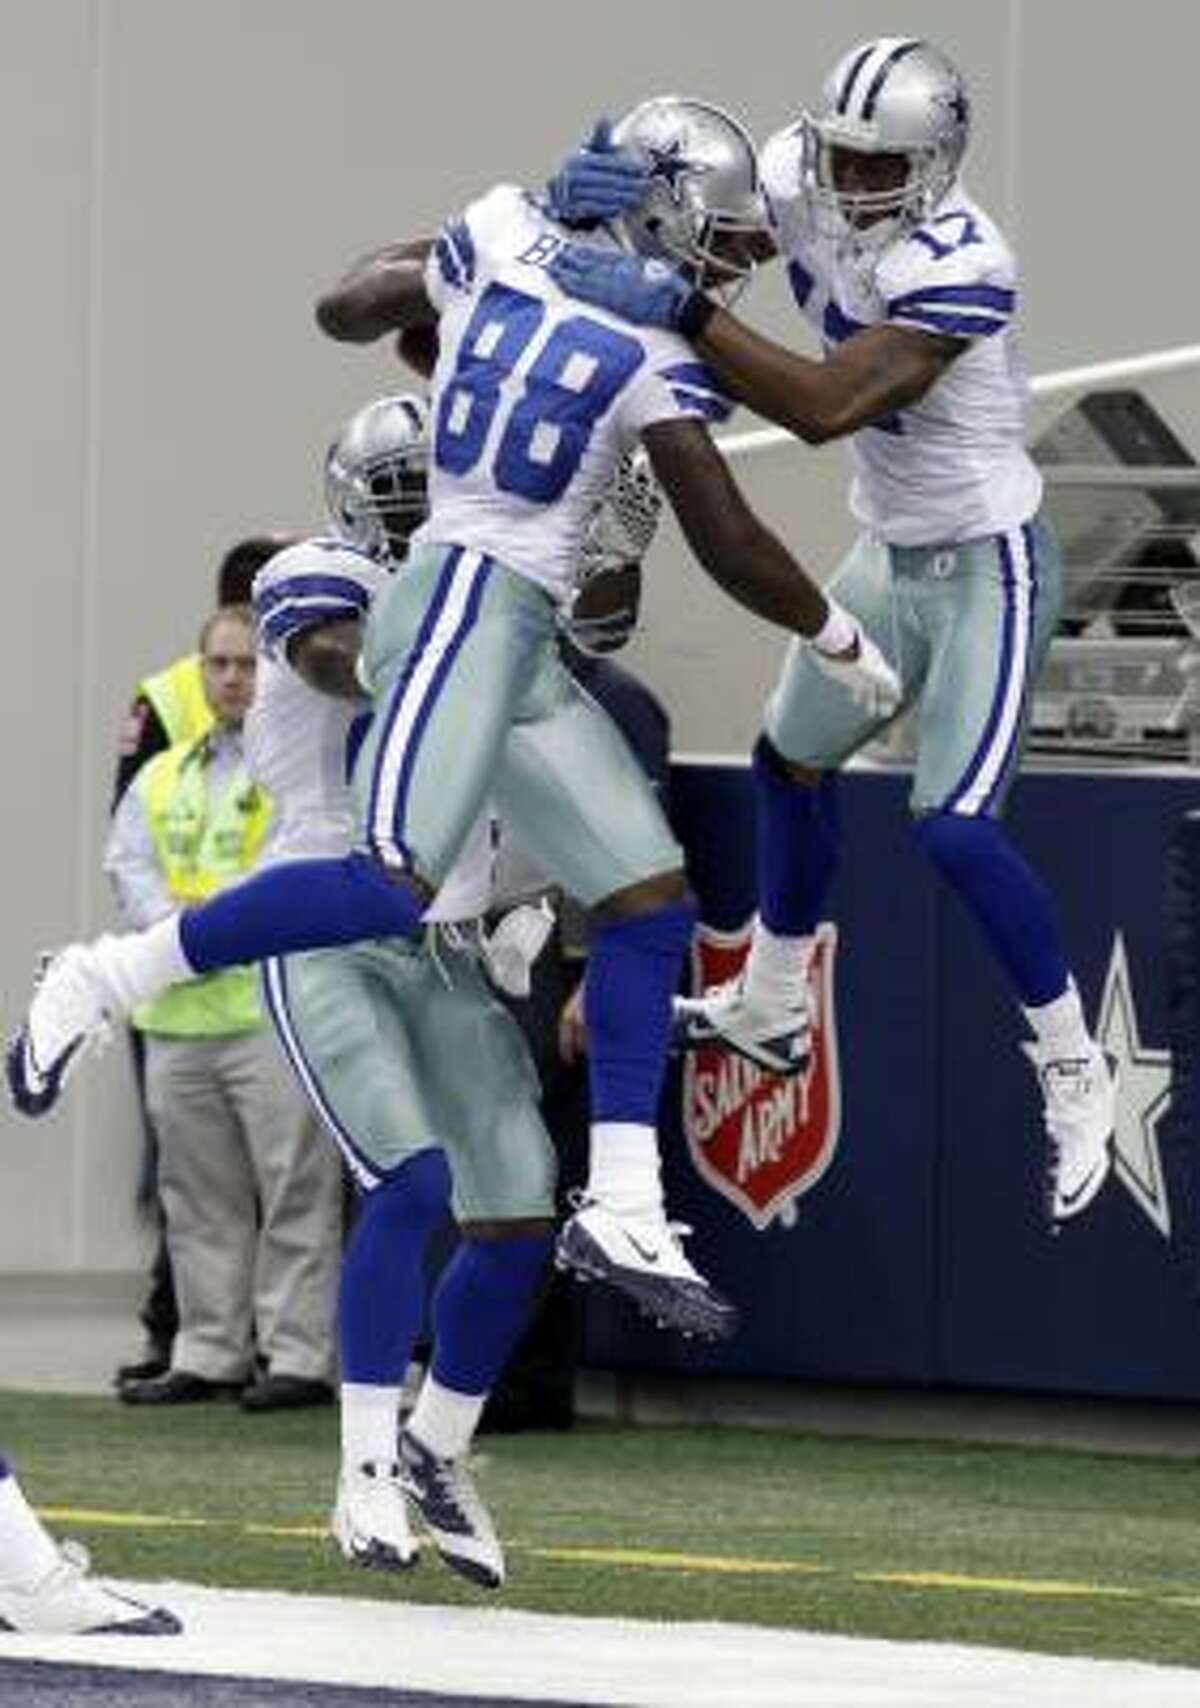 Cowboys wide receiver Dez Bryant celebrates his touchdown with wide receiver Sam Hurd.